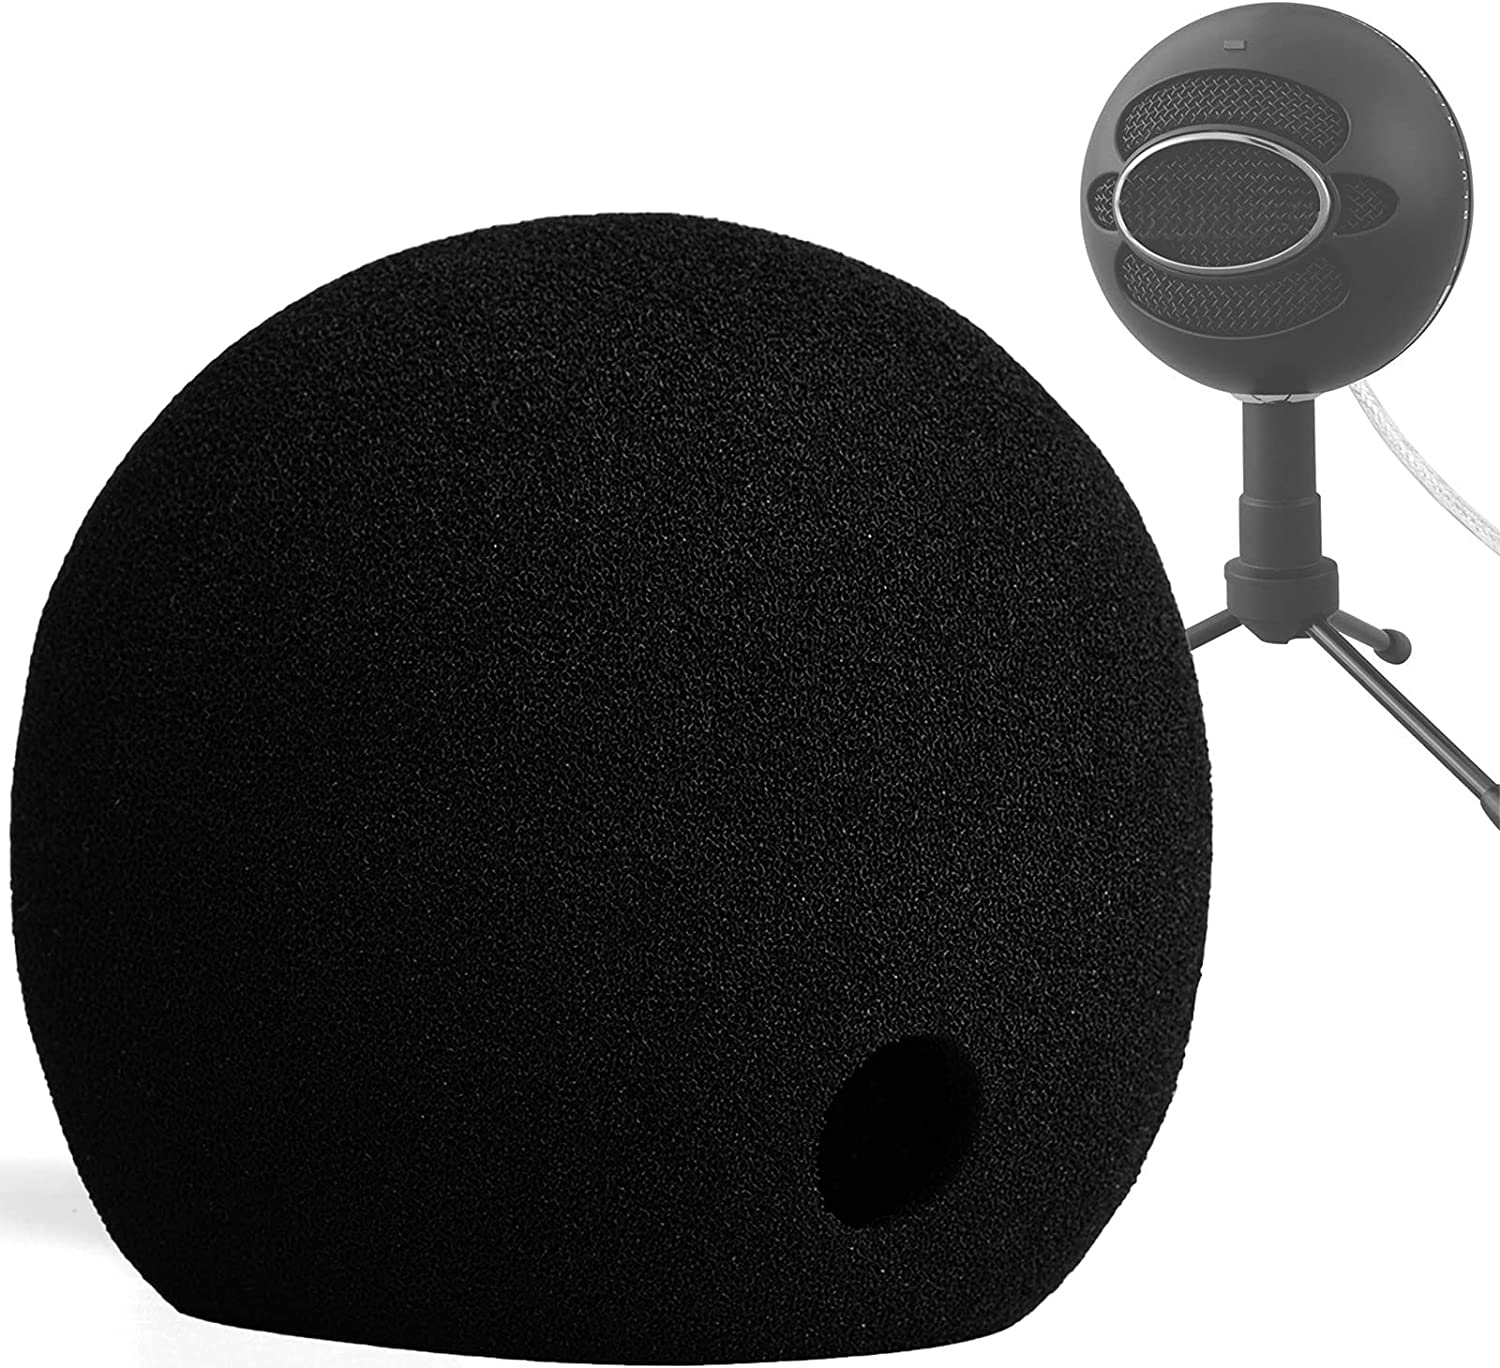 Chromlives Mic Foam Cover Compatible Ice Super special price Pop Snowball with Blue Regular dealer